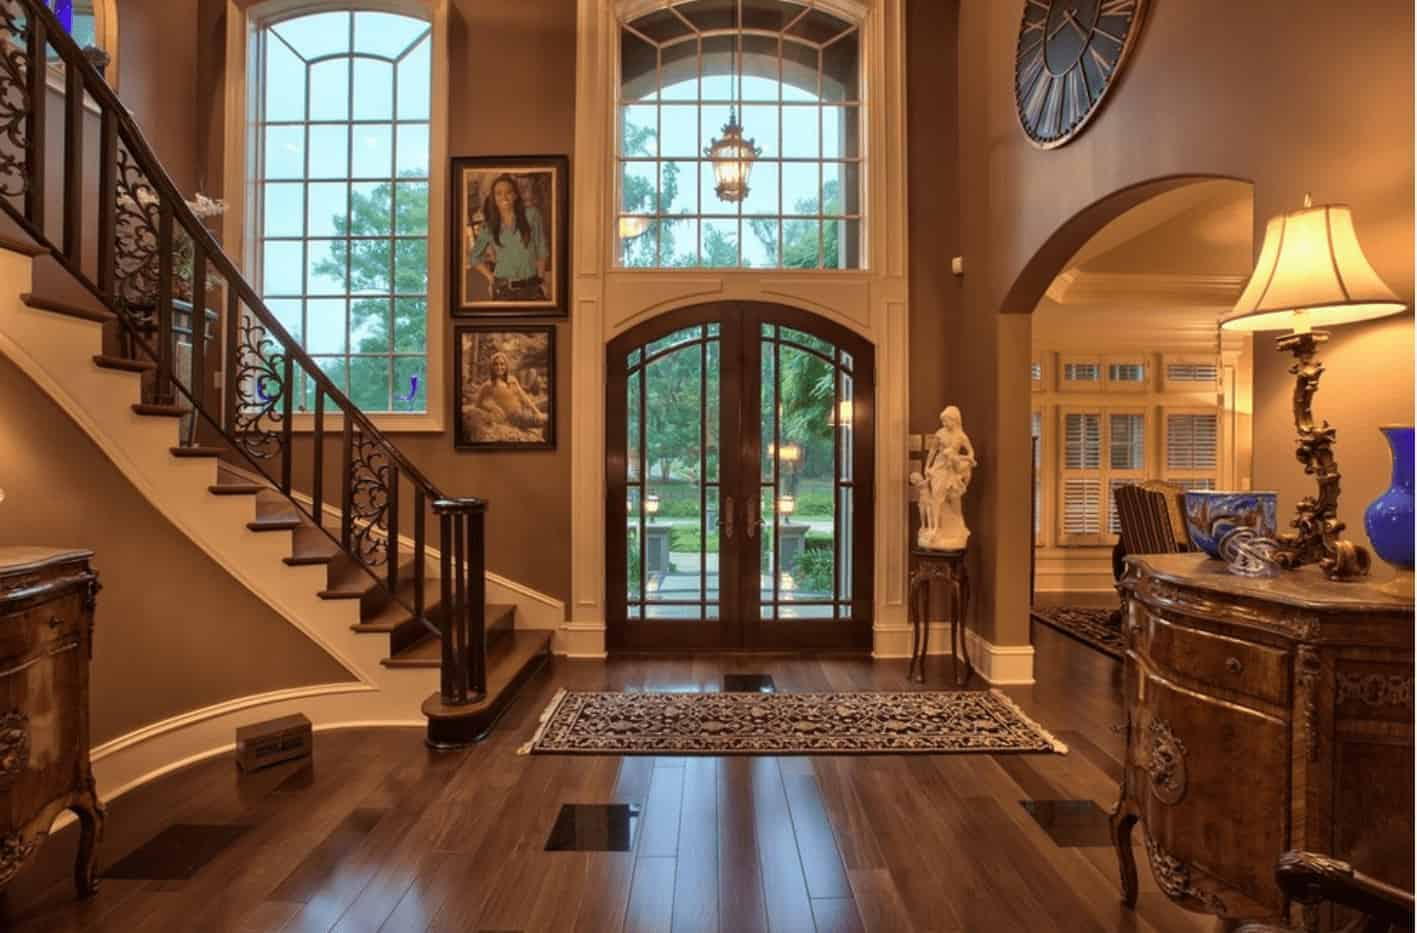 This foyer features brown walls, hardwood floors and a two-story ceiling.